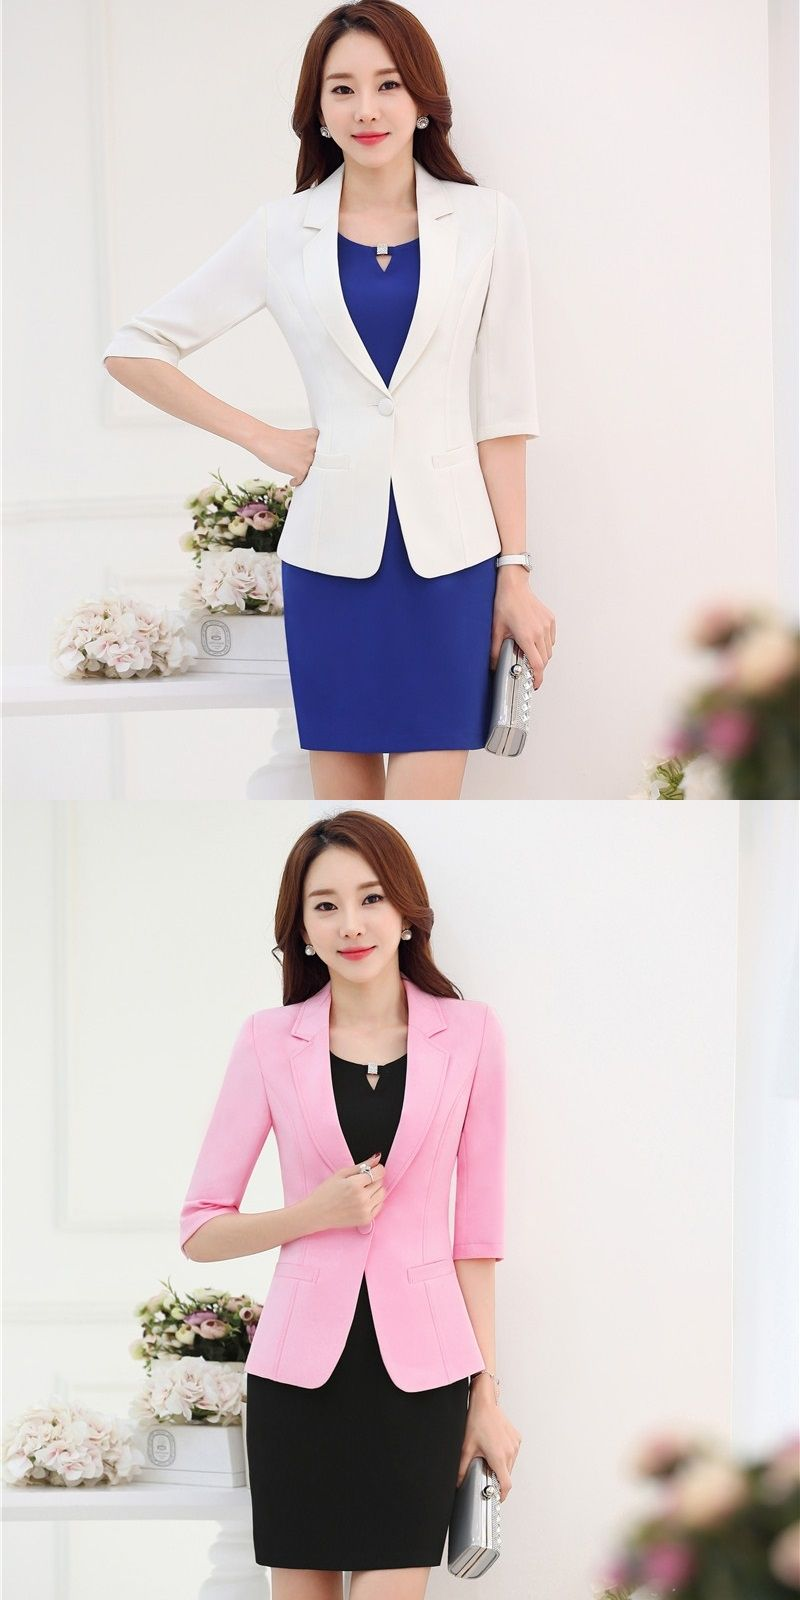 2f1f83d3d1ae3 Plus Size 3XL Formal Uniform Design Professional Business Suits With Jackets  And Dress for Ladies Office Blazers Outfits Pink